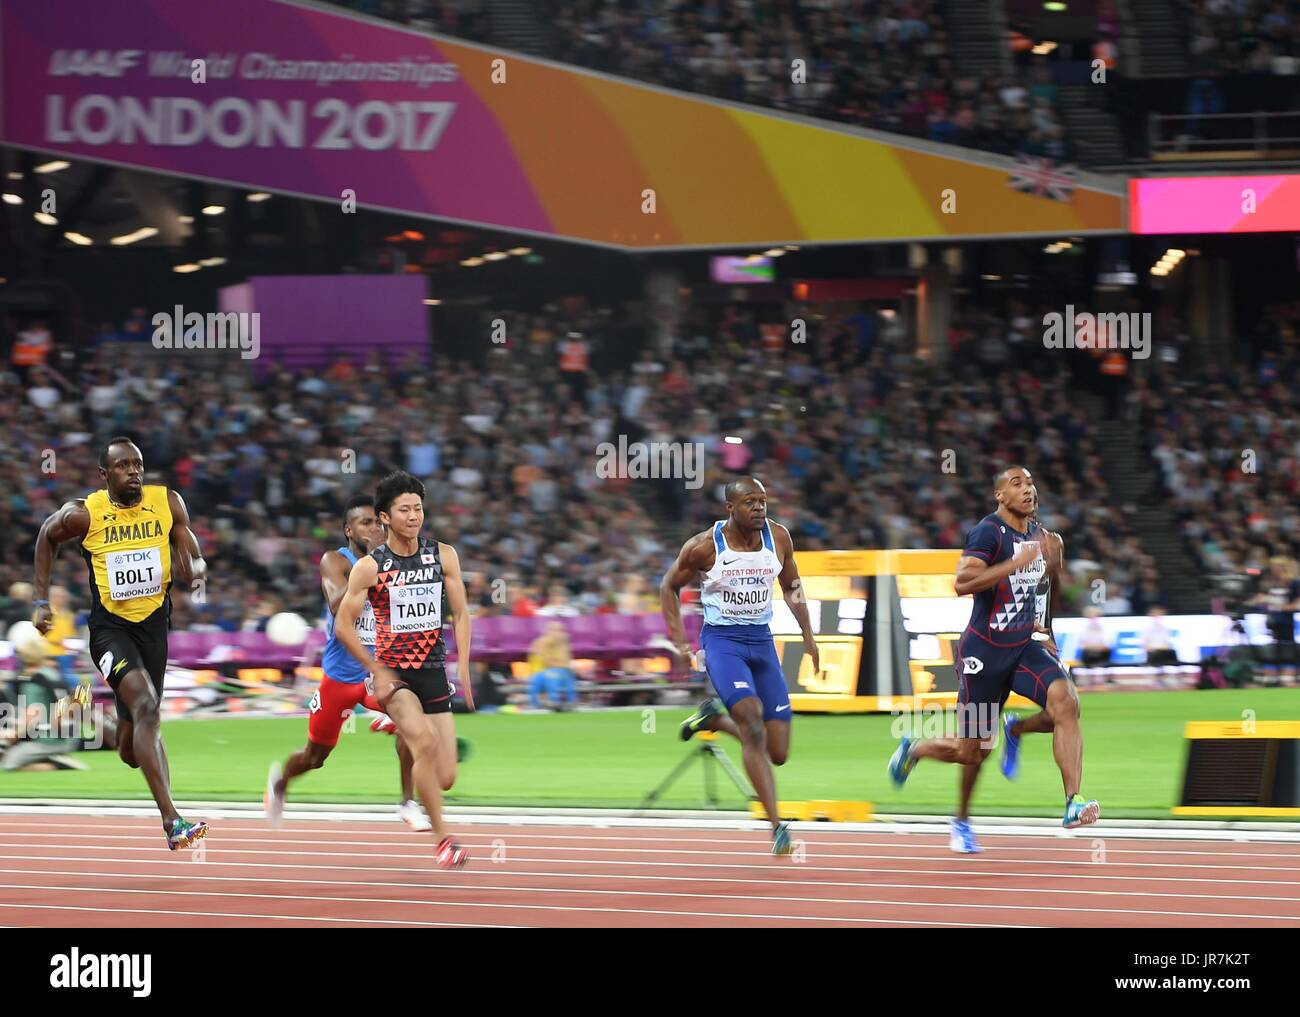 Stratford, UK. 4th Aug, 2017. Usain Bolt (JAM, left) and James Dasaolu GBR, 2nd right) in the mens 100m heats. IAAF Stock Photo